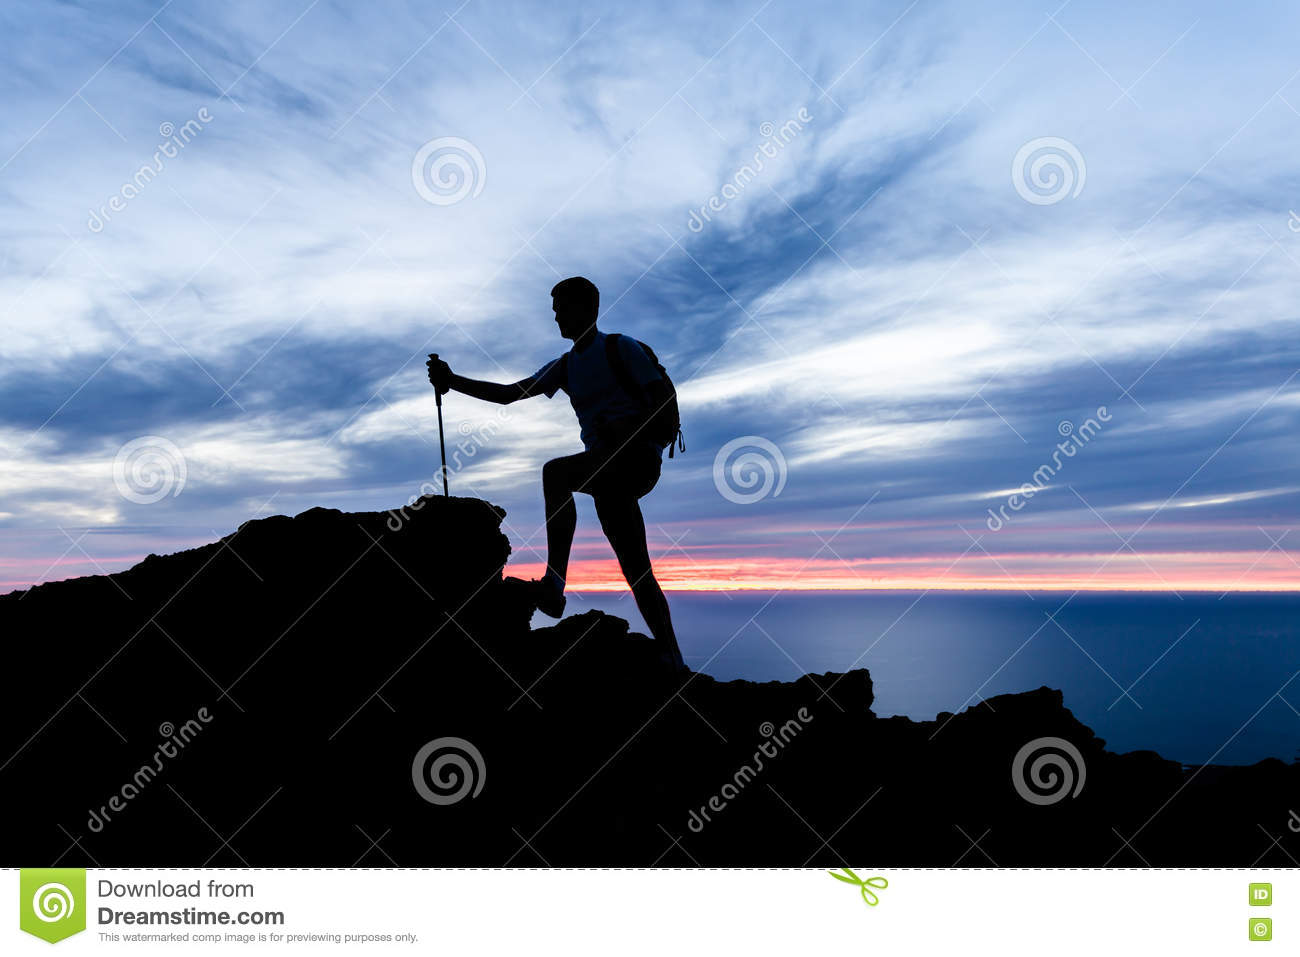 Man Hiking Silhouette In Mountains, Ocean And Sunset Stock ...